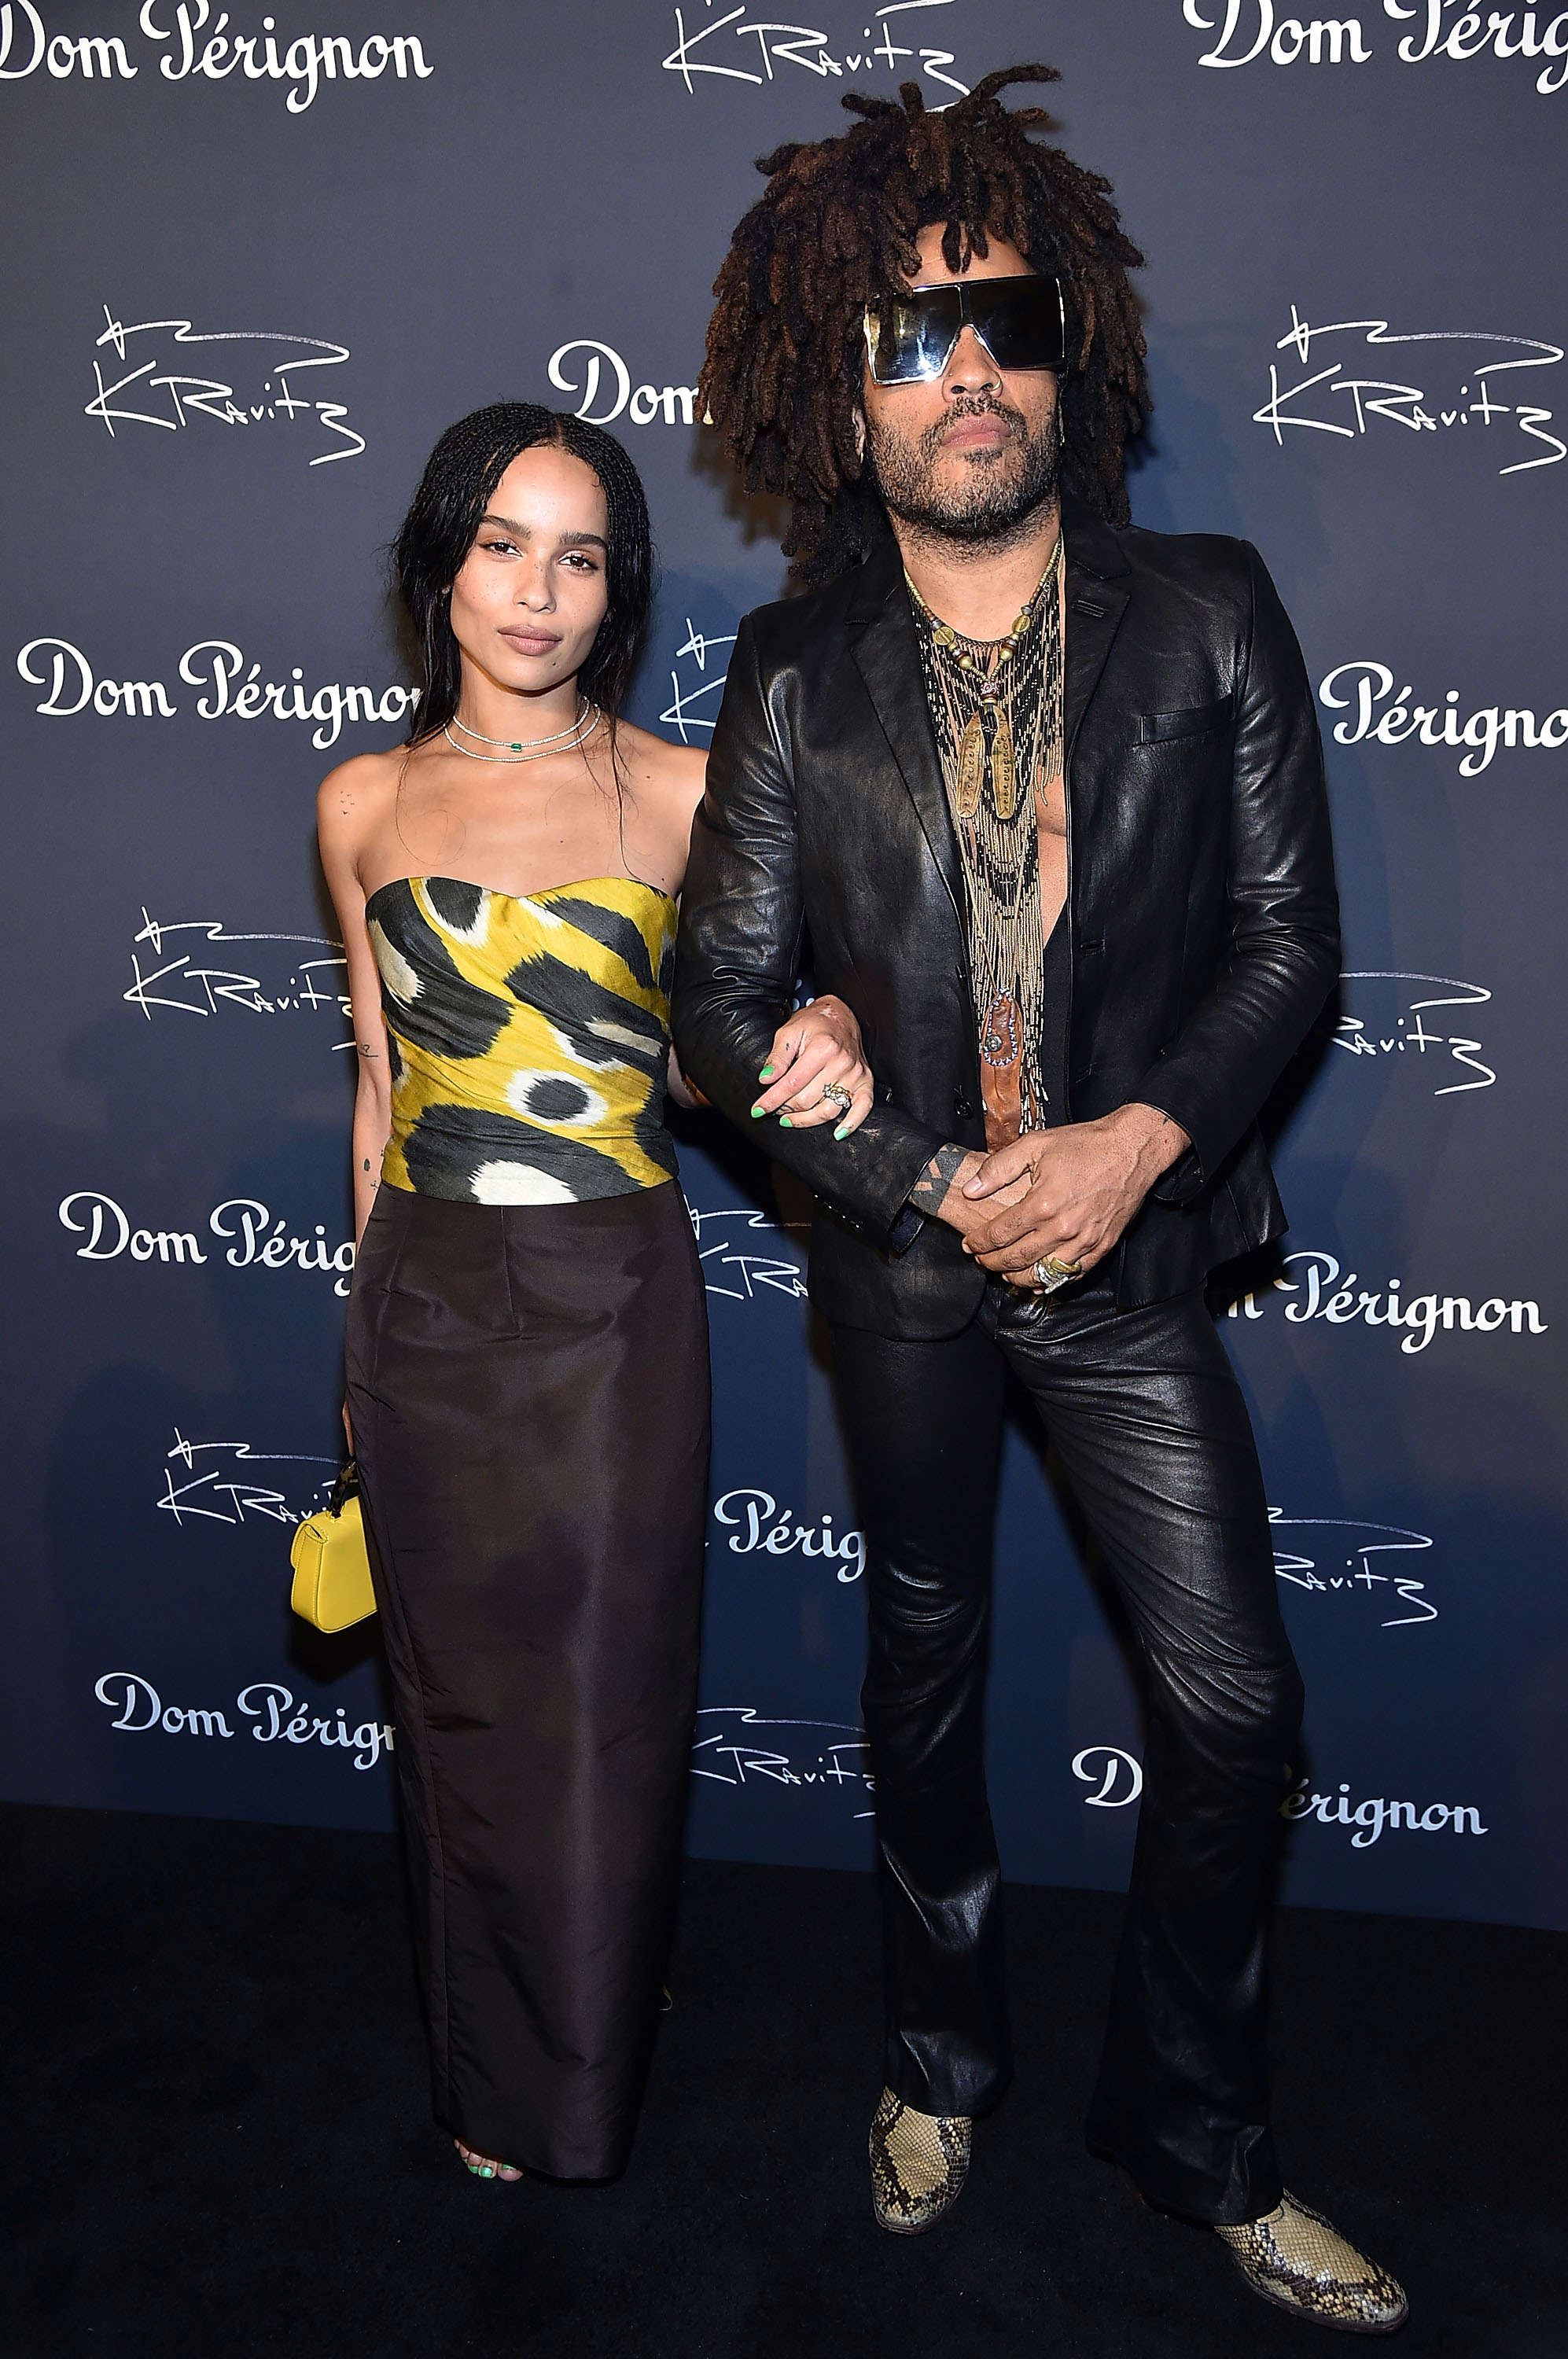 Slide 7 of 18: NEW YORK, NY - SEPTEMBER 28:  Zoe Kravitz and Lenny Kravitz attend the Dom Perignon & Lenny Kravitz: 'Assemblage' Exhibition at Skylight Modern on September 28, 2018 in New York City.  (Photo by Theo Wargo/Getty Images)